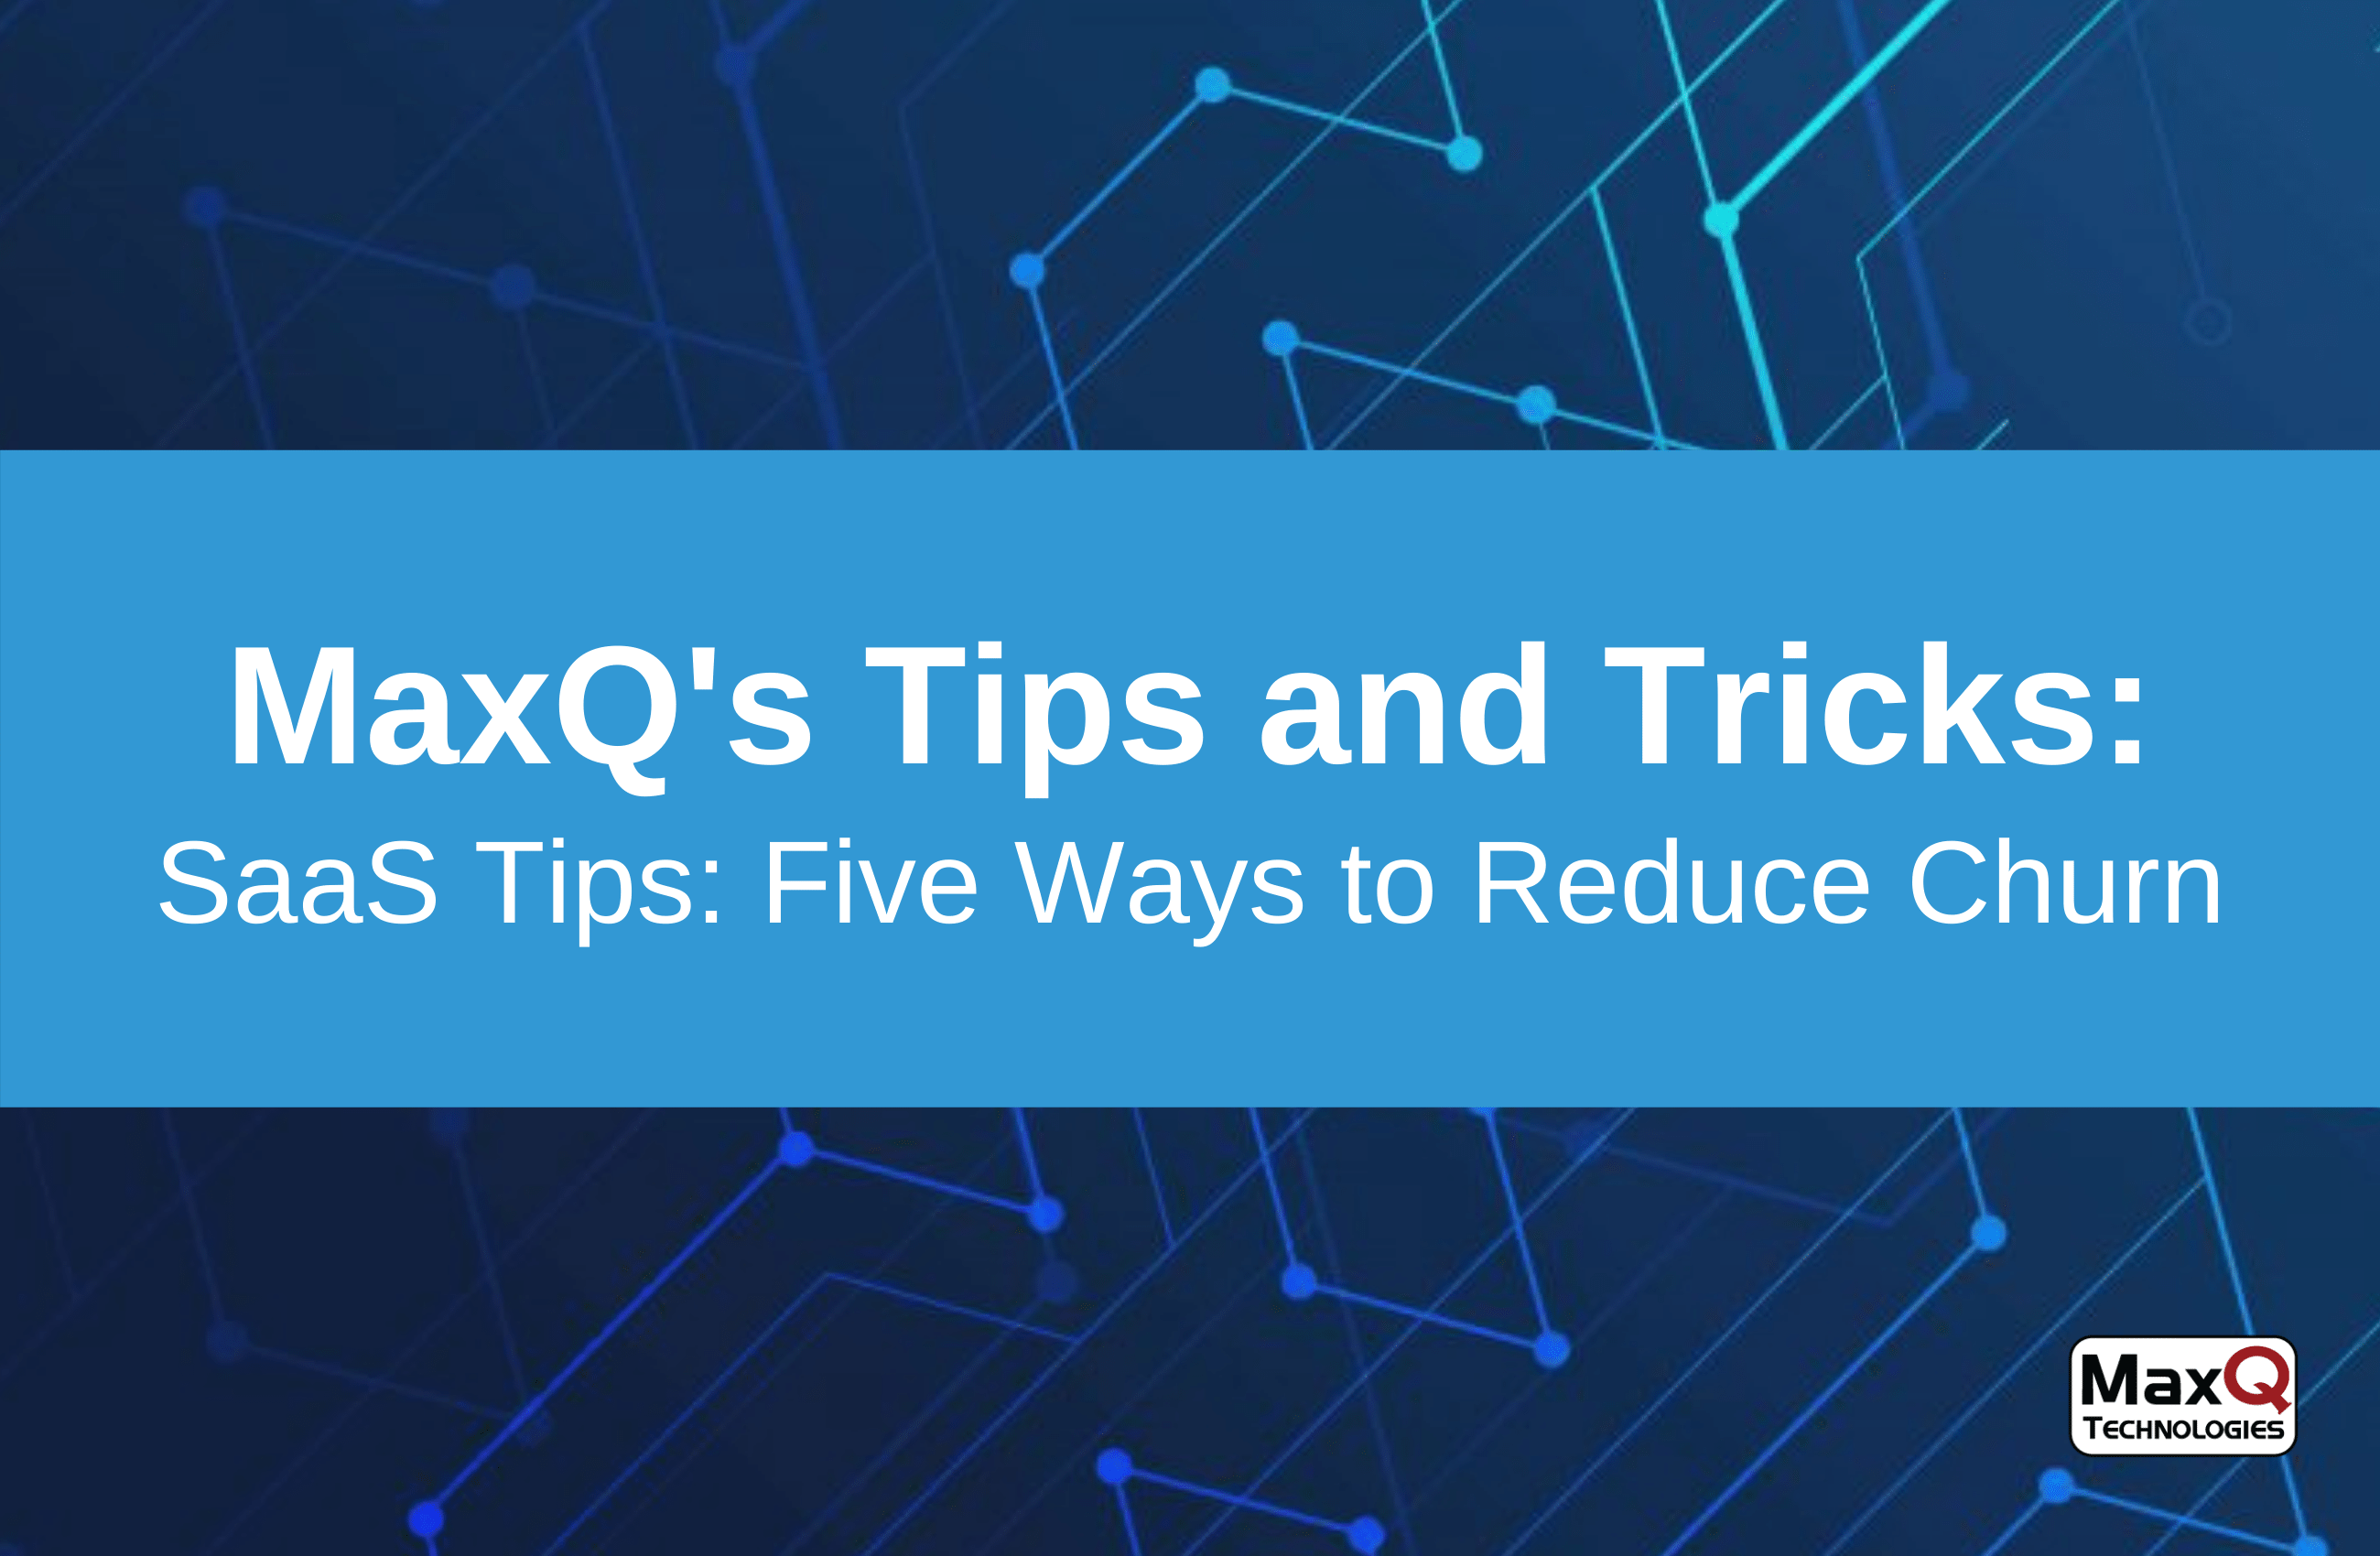 SaaS Tips: Five Ways to Reduce Churn